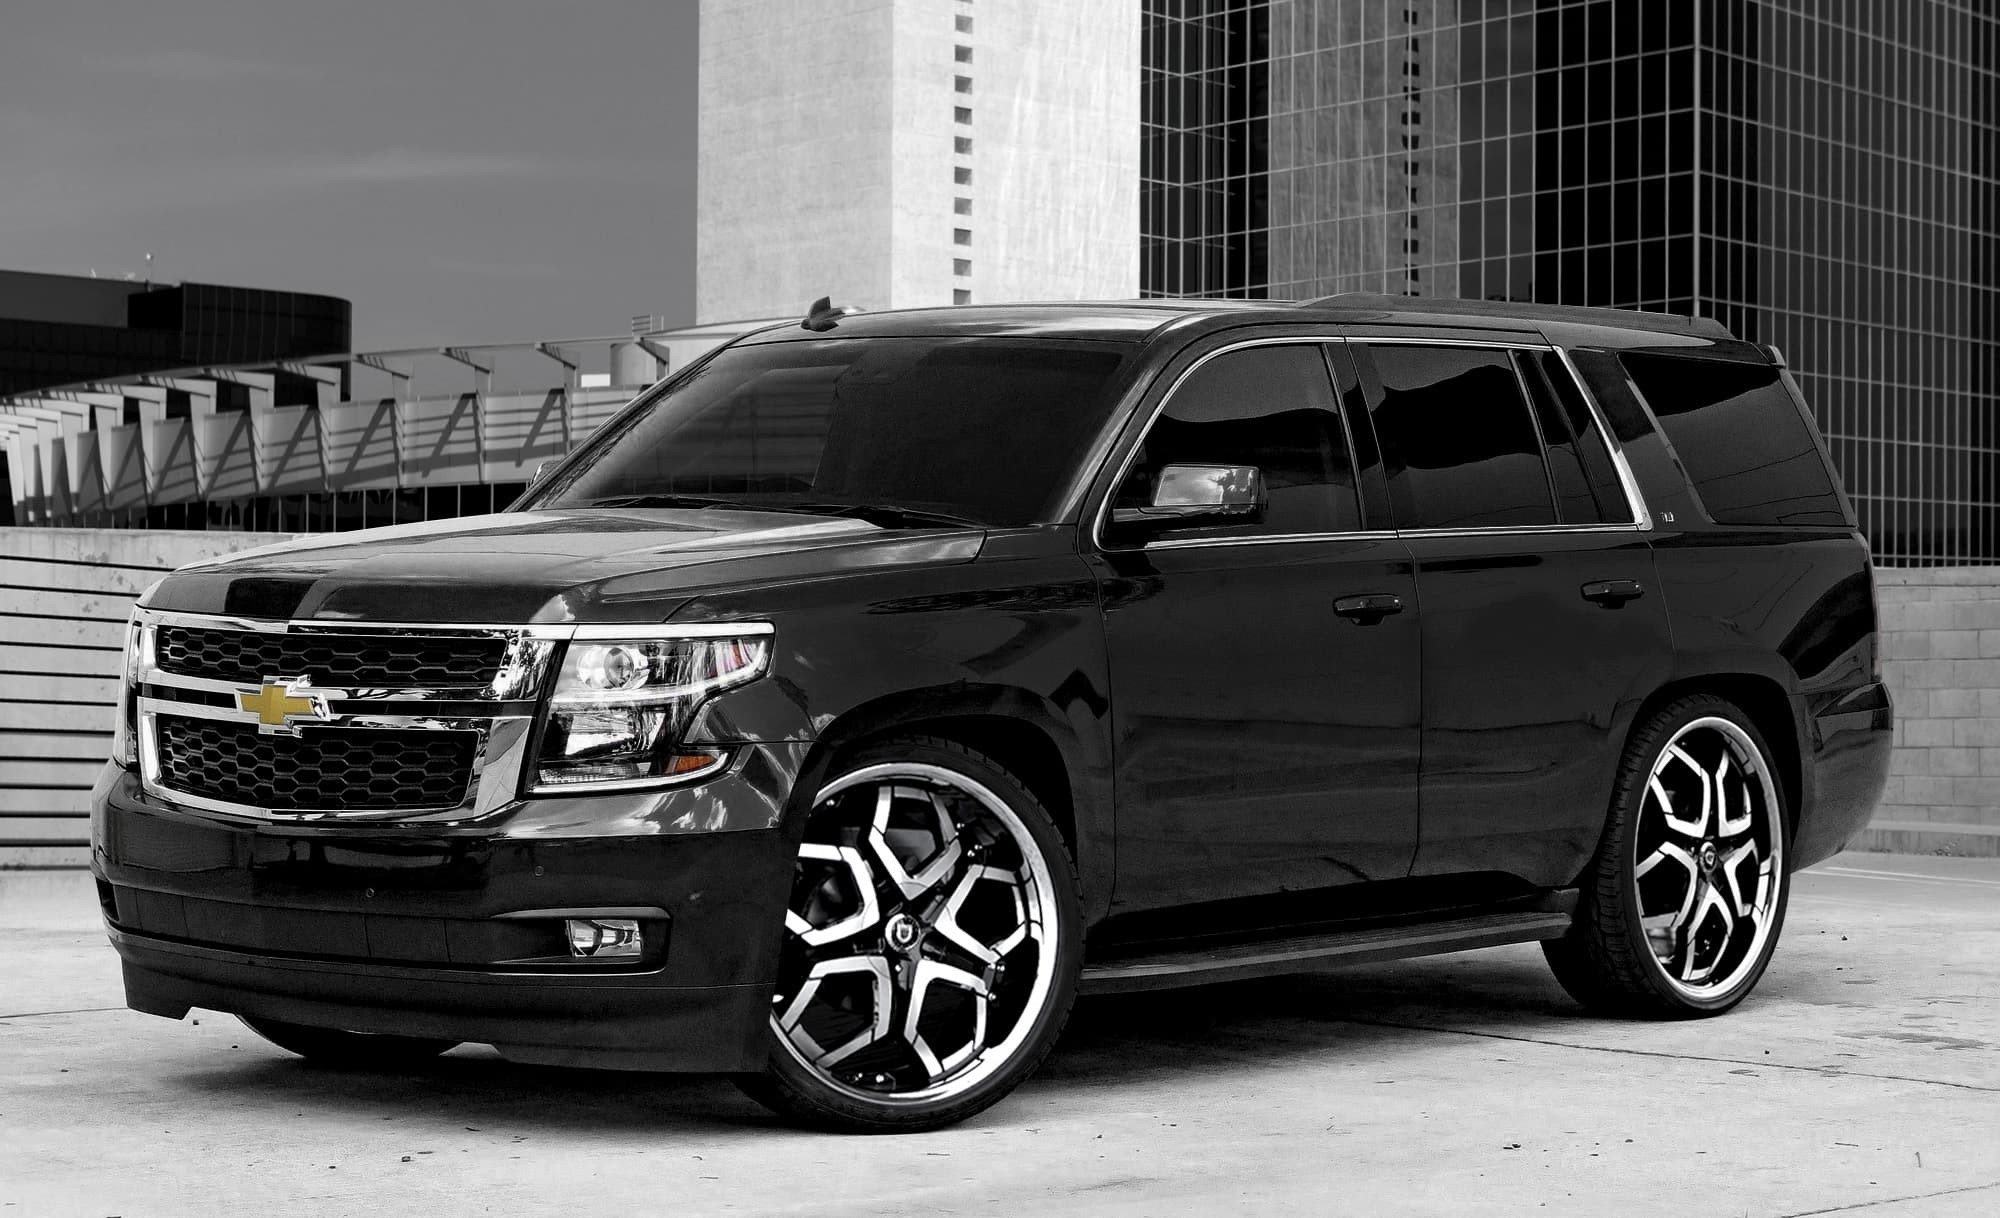 Machined and Black Hydra on the Chevrolet Tahoe.